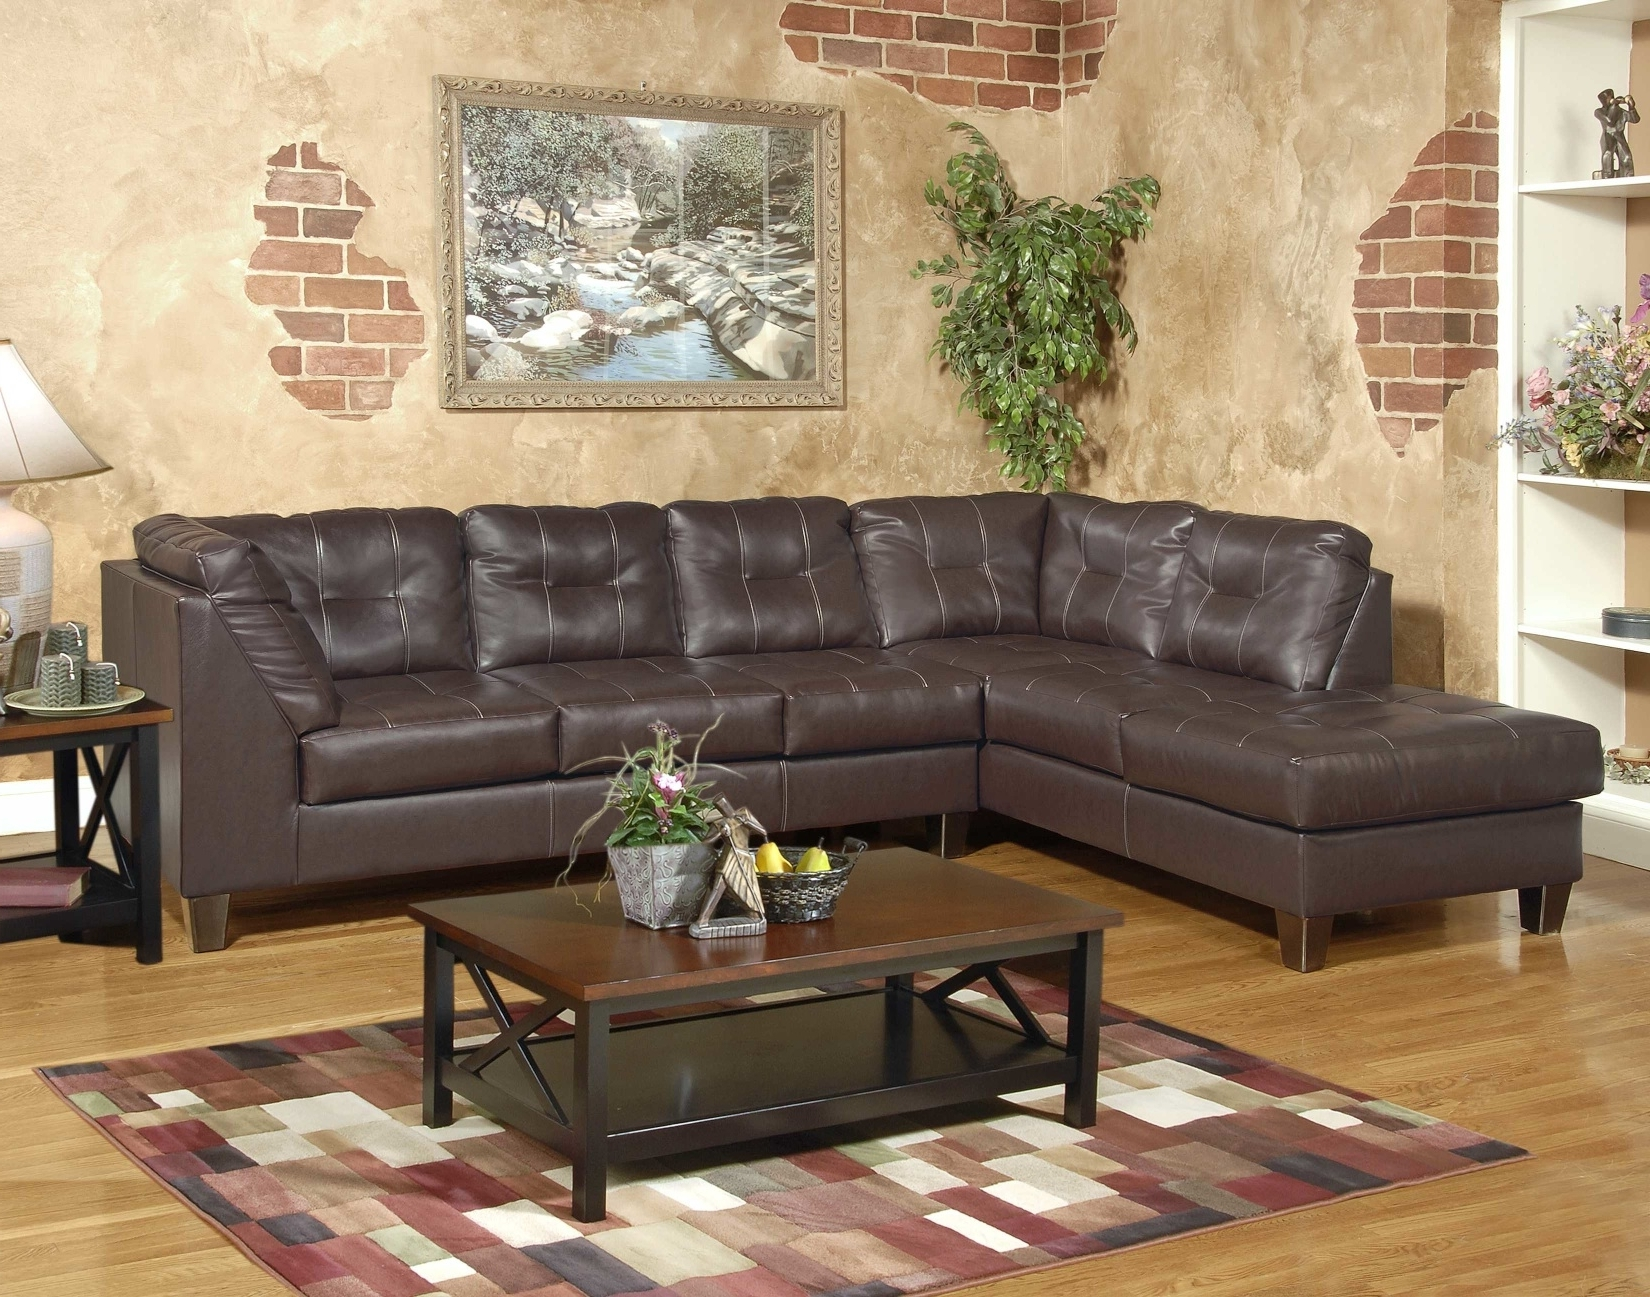 Discount Furniture And Mattresses – Tallahassee Furniture Direct For Most Recently Released Tallahassee Sectional Sofas (Gallery 8 of 20)